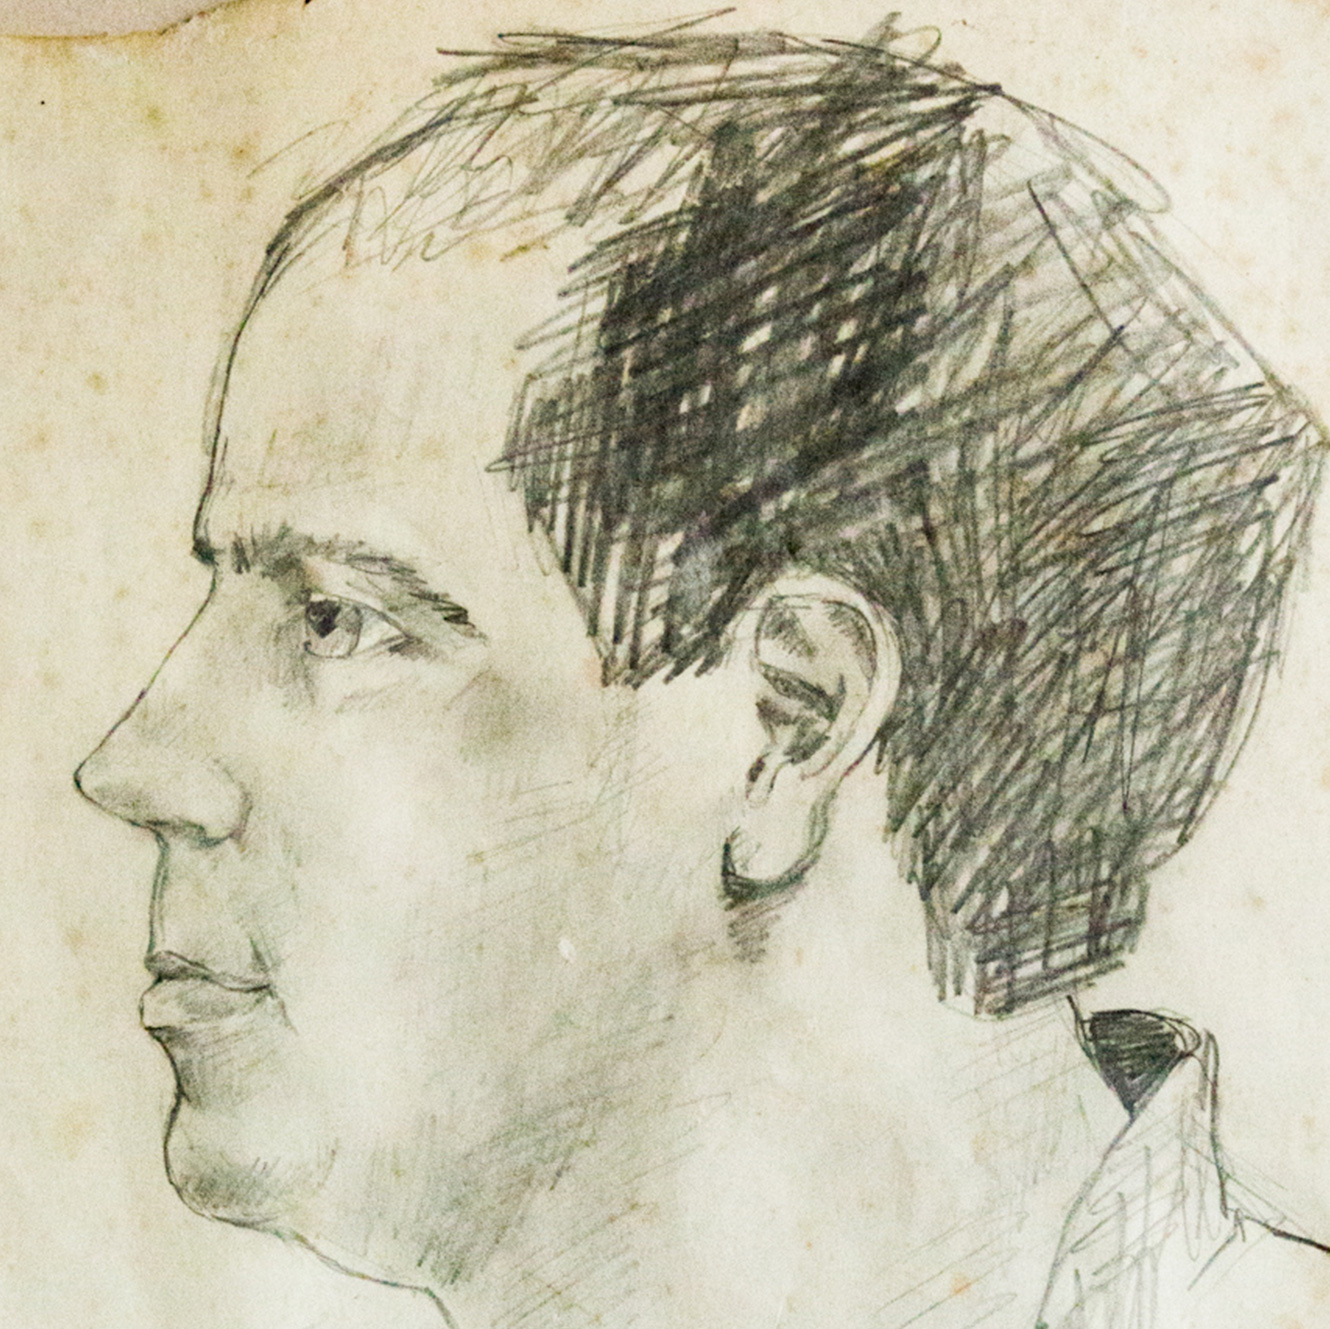 Peter (30 x 30cm. Pencil.)